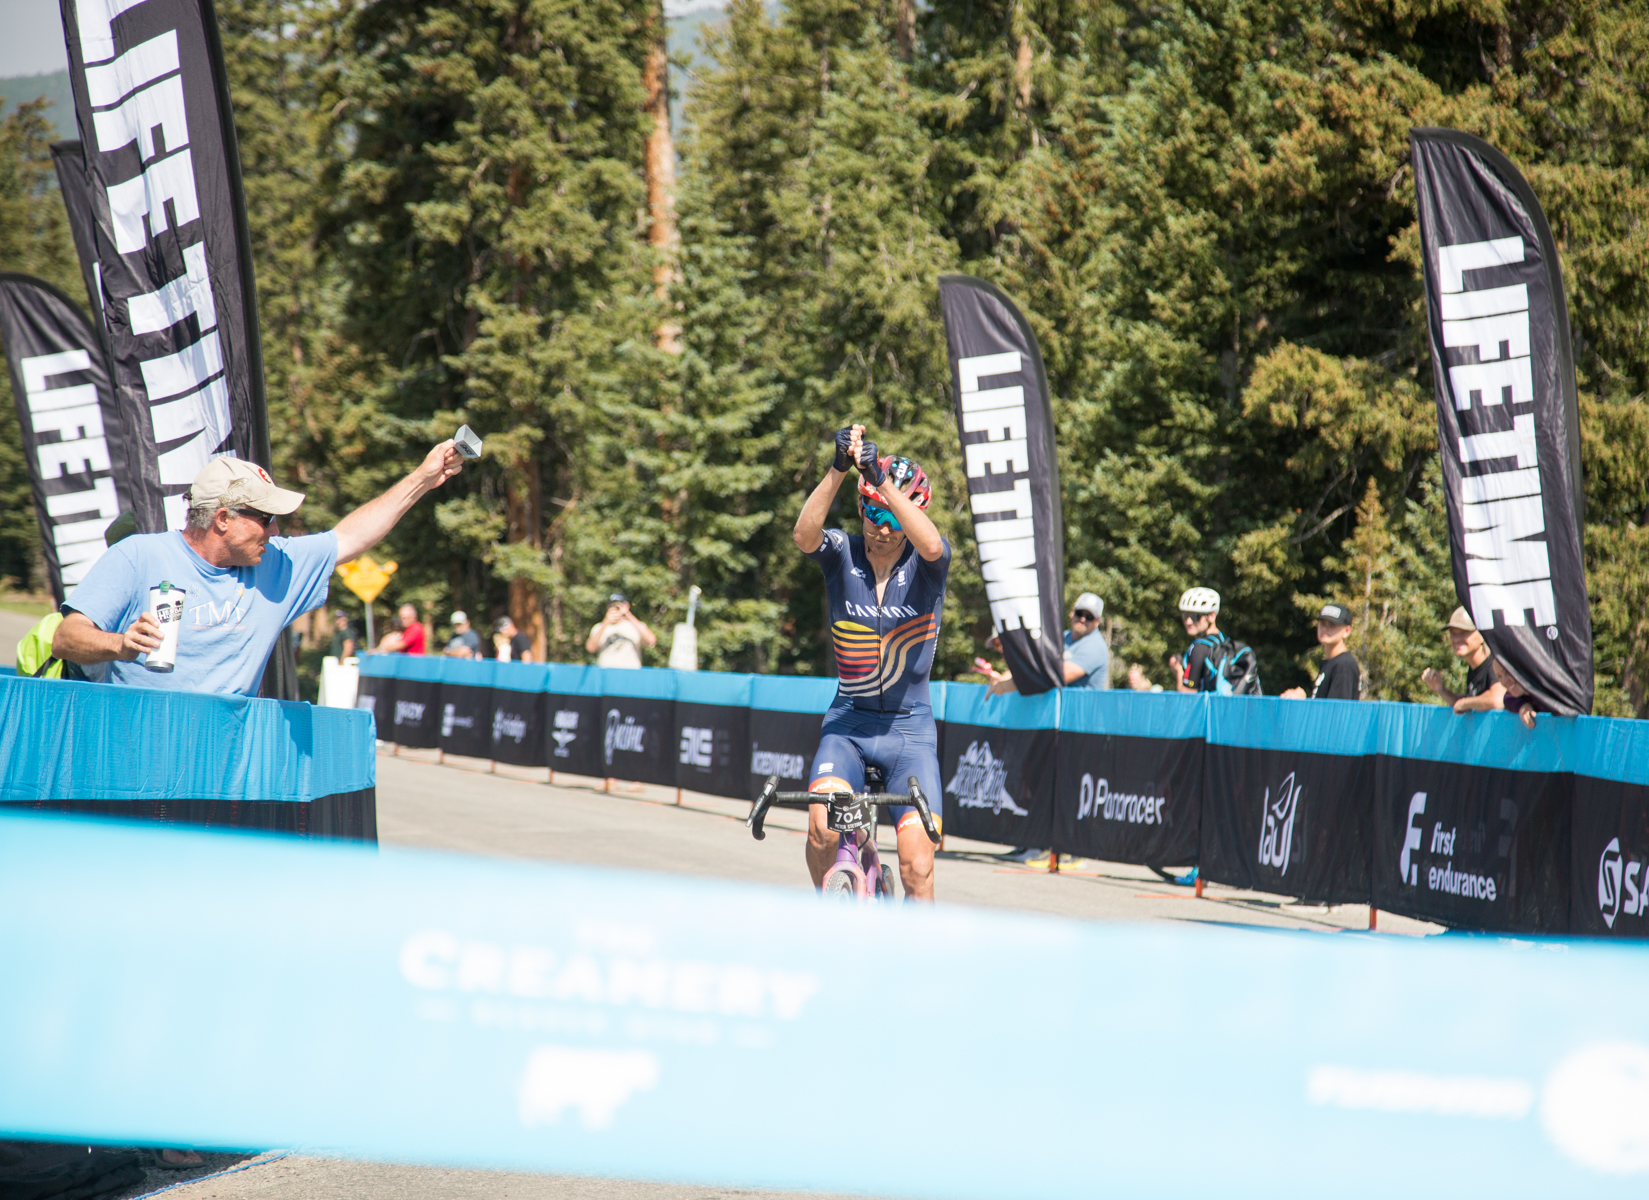 Peter Stetina takes the Mens' Pro-Open win at the 2021 Crusher in the Tushar. Photo courtesy Life Time